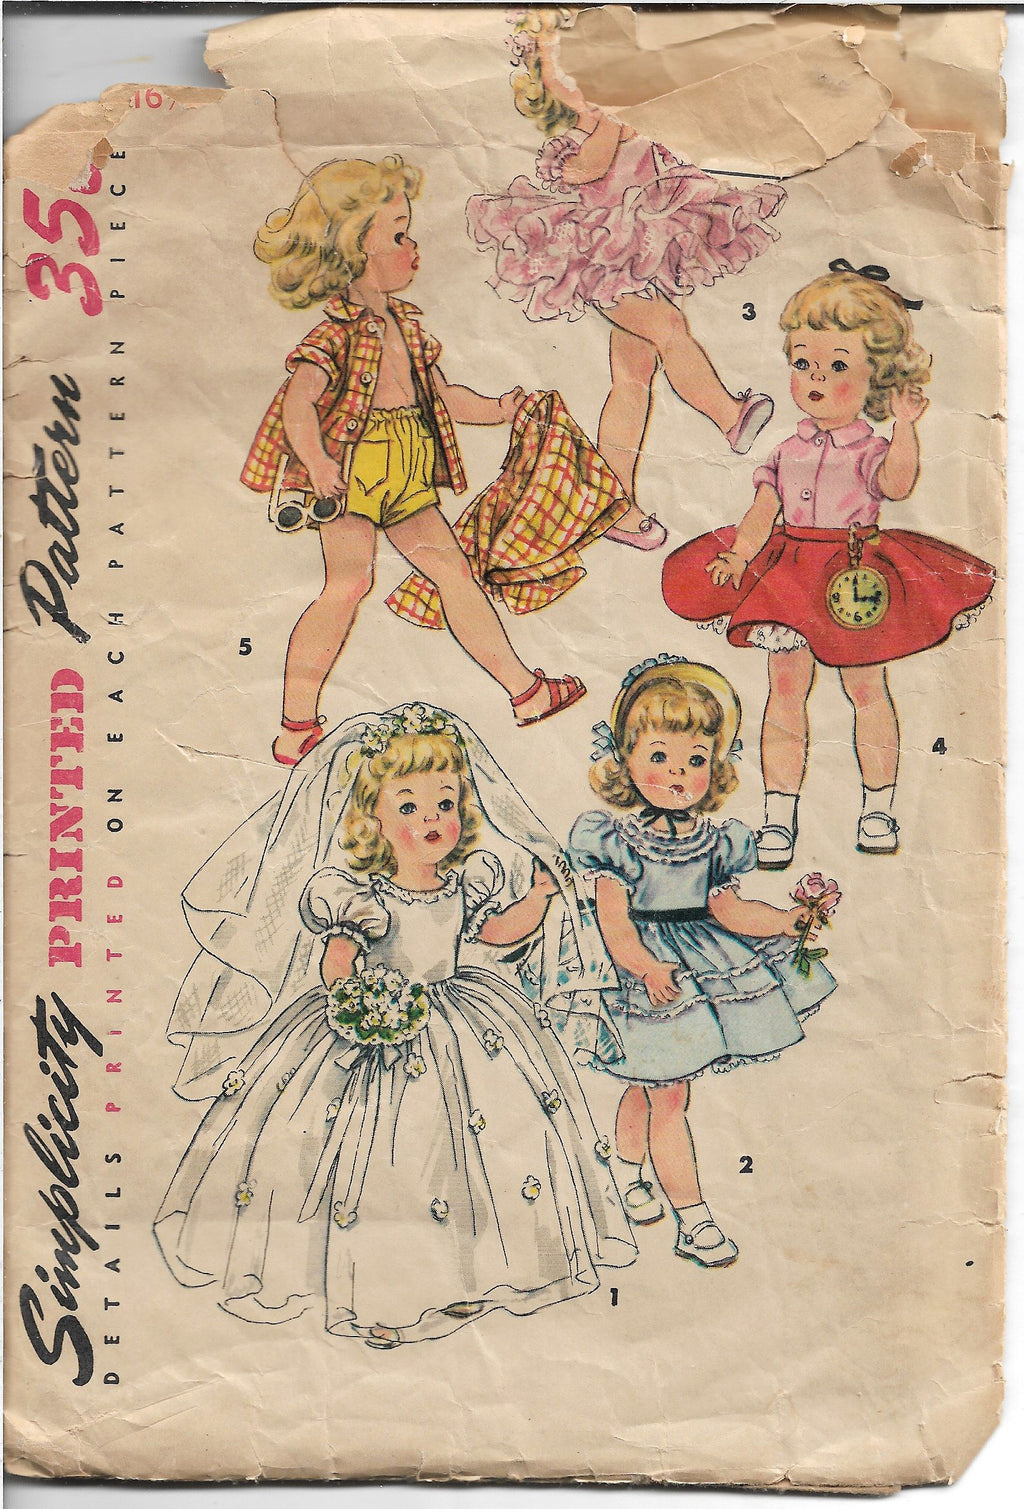 Simplicity 4909 Toni Walker Doll Wardrobe Vintage Sewing Craft Pattern 1950s - VintageStitching - Vintage Sewing Patterns